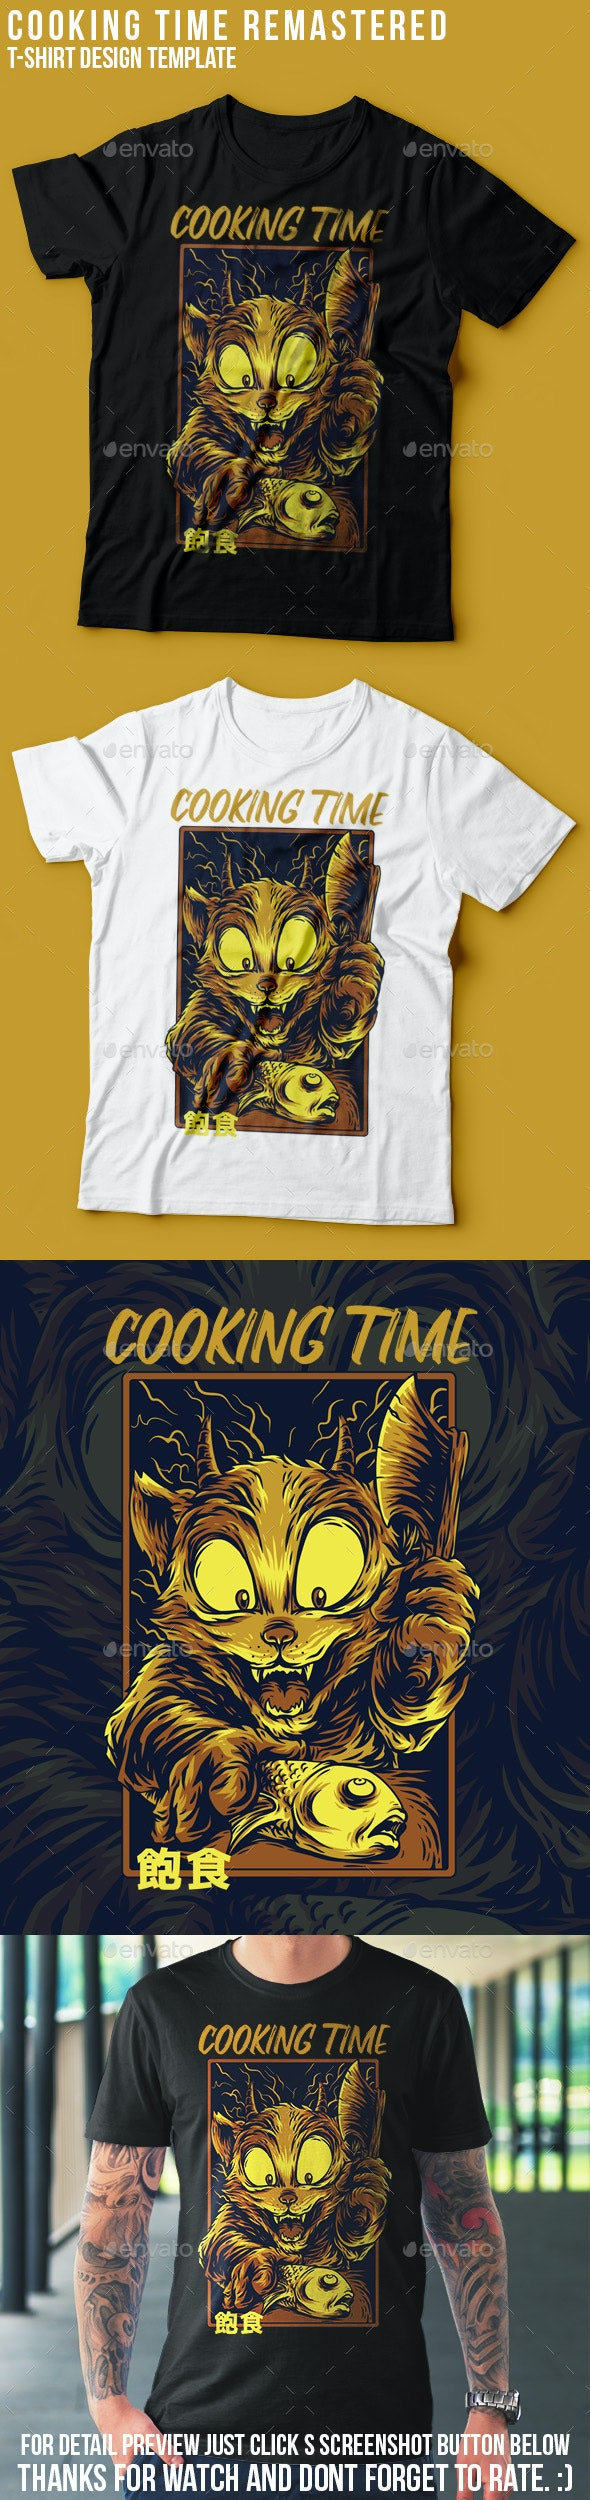 Cooking Time Remastered T-Shirt Design - Events T-Shirts